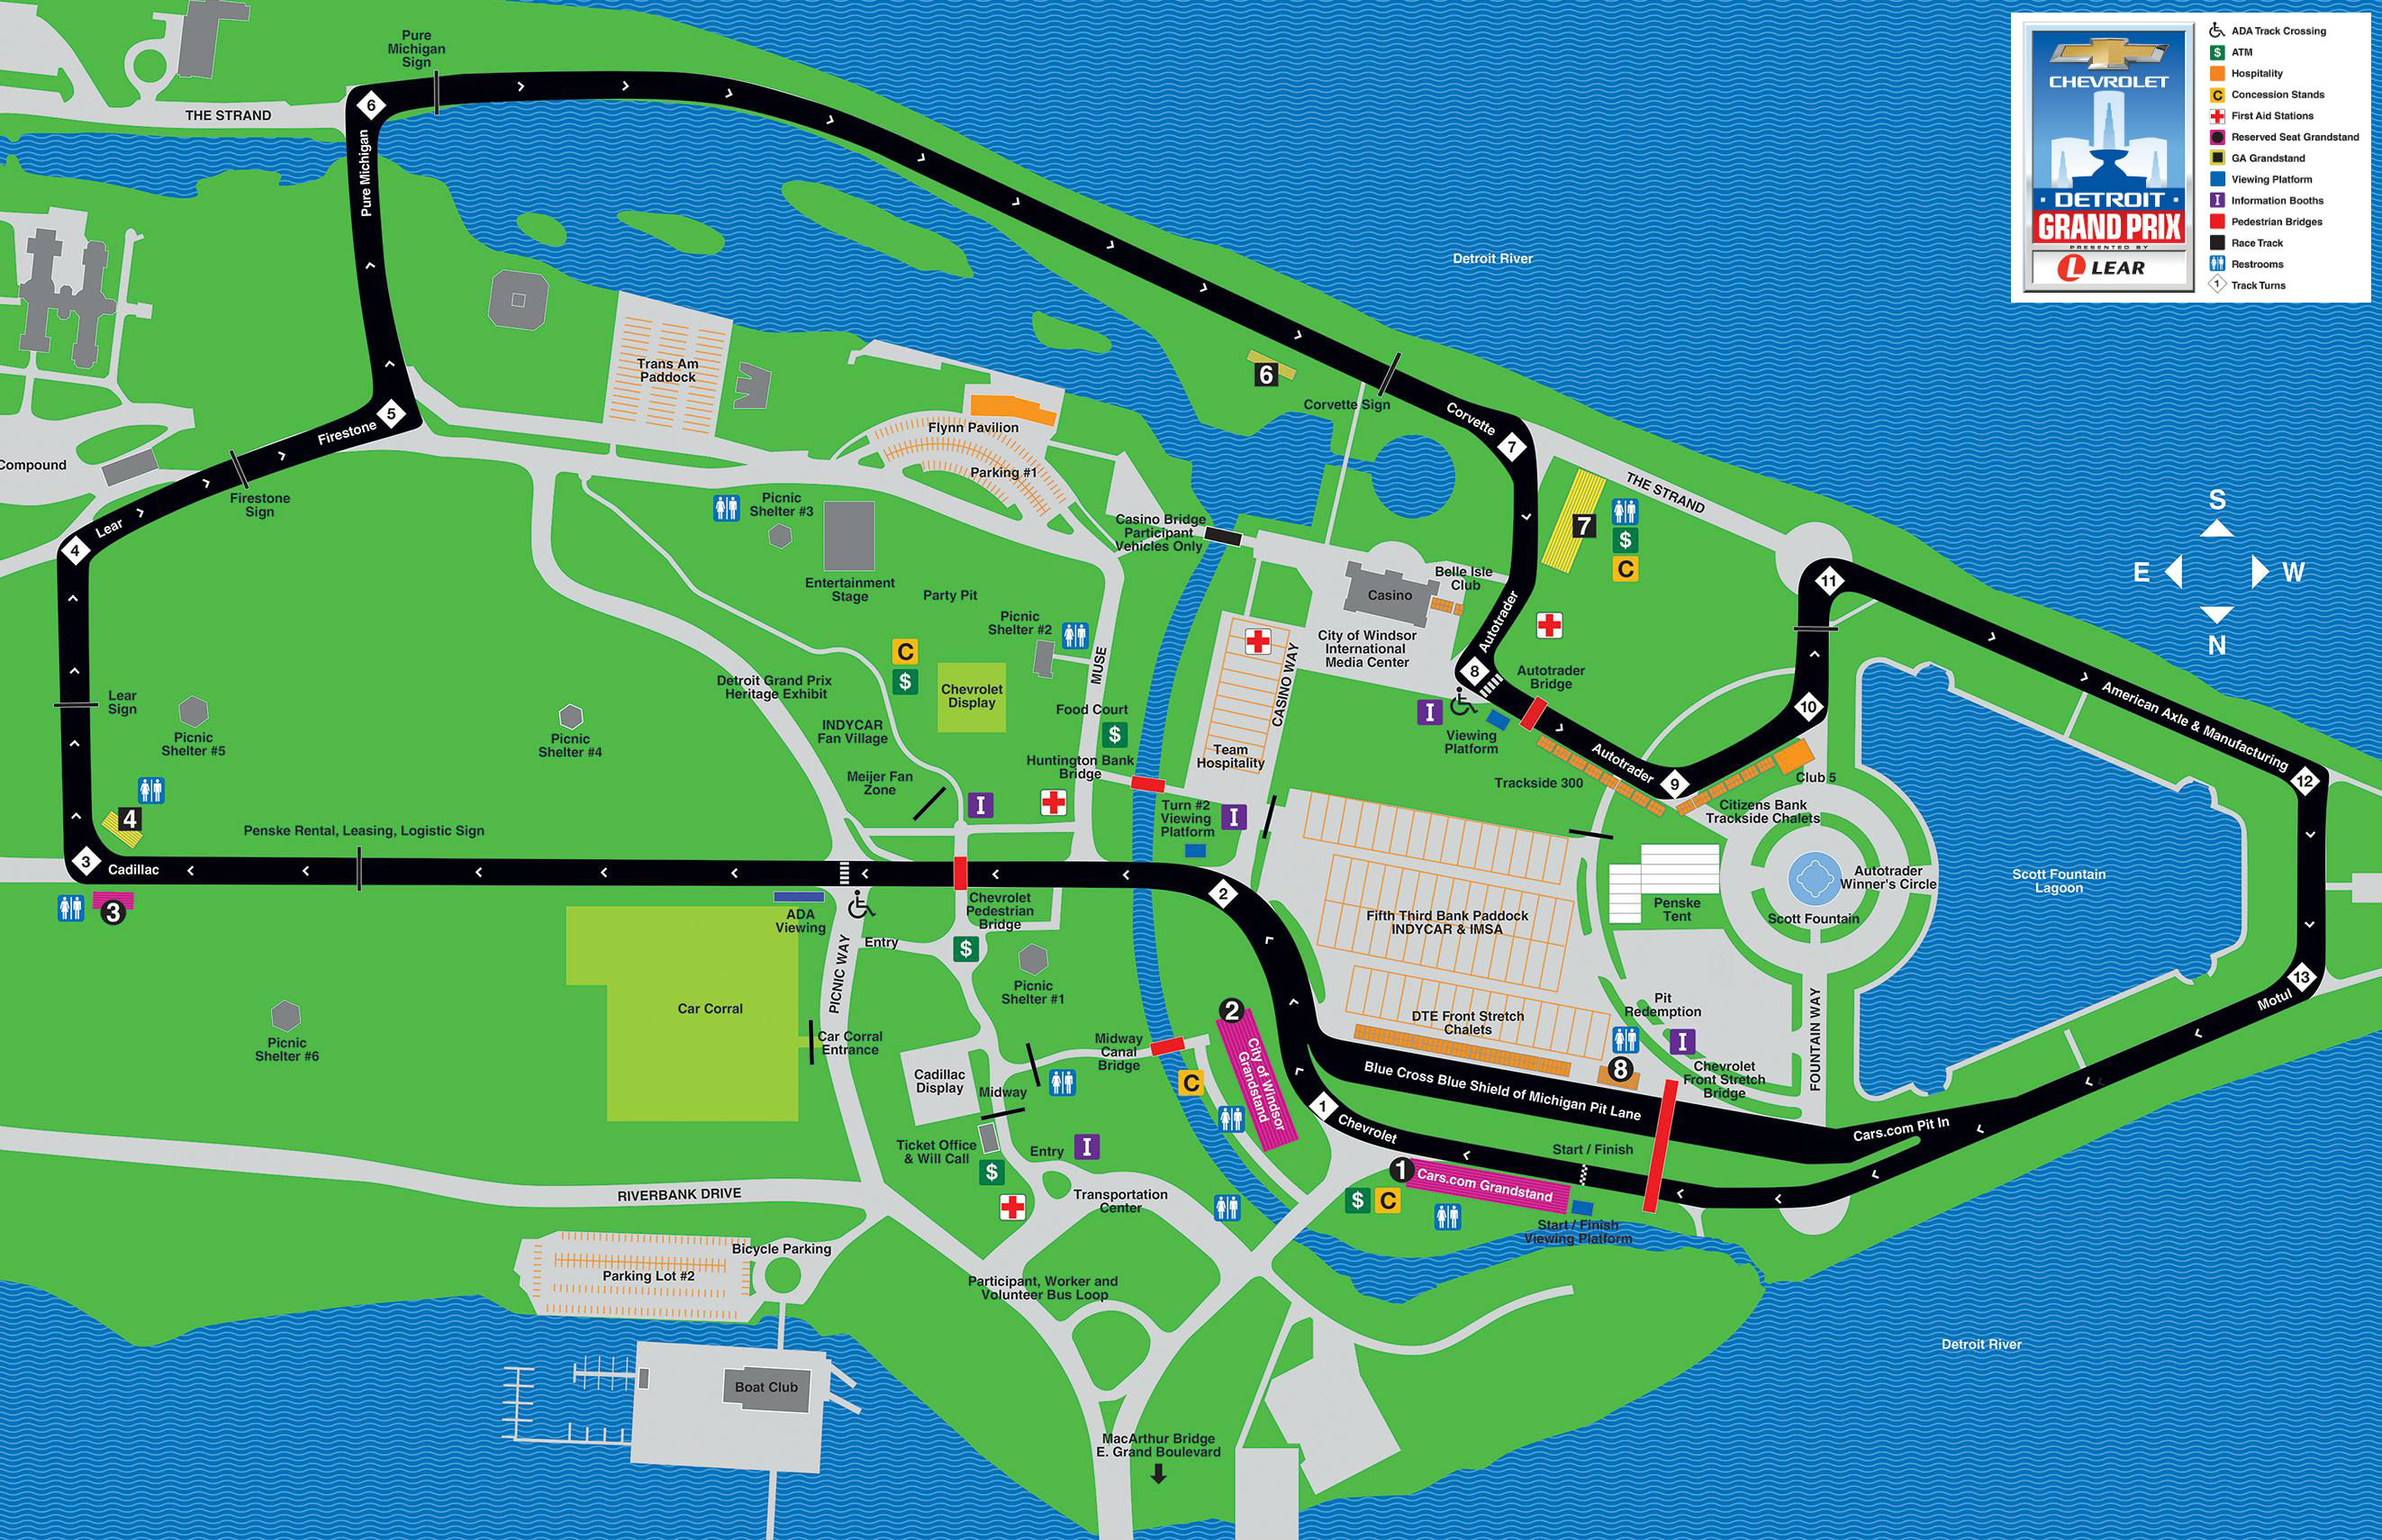 Detroit Grand Prix 2019: Here's the official Belle Isle race map on